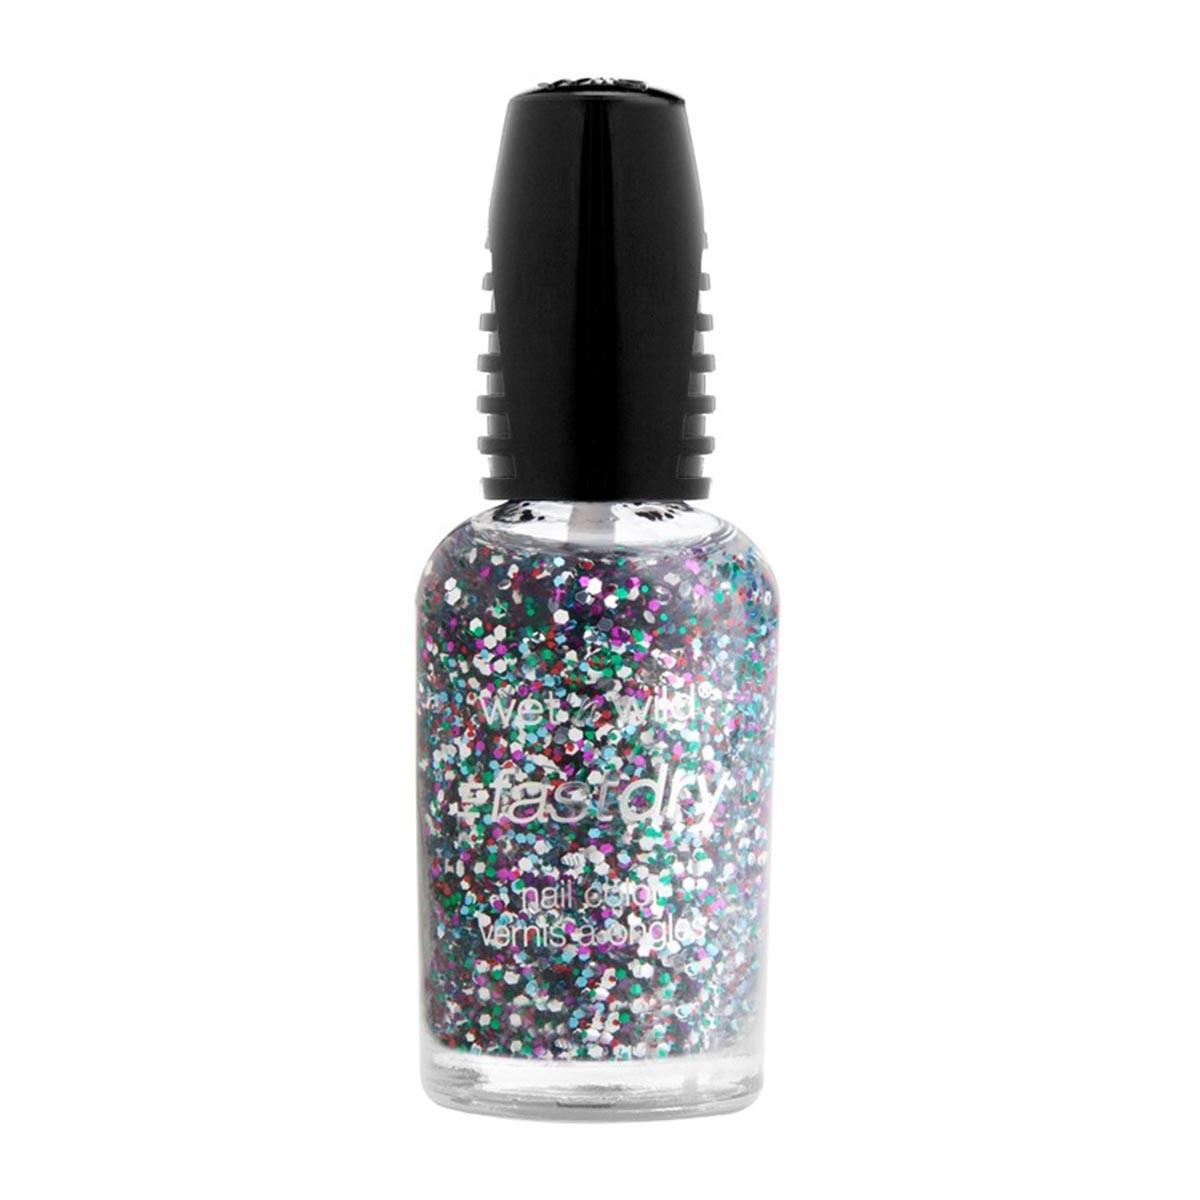 Wet n wild Fastdry Nail Color Party Of Five Glitters